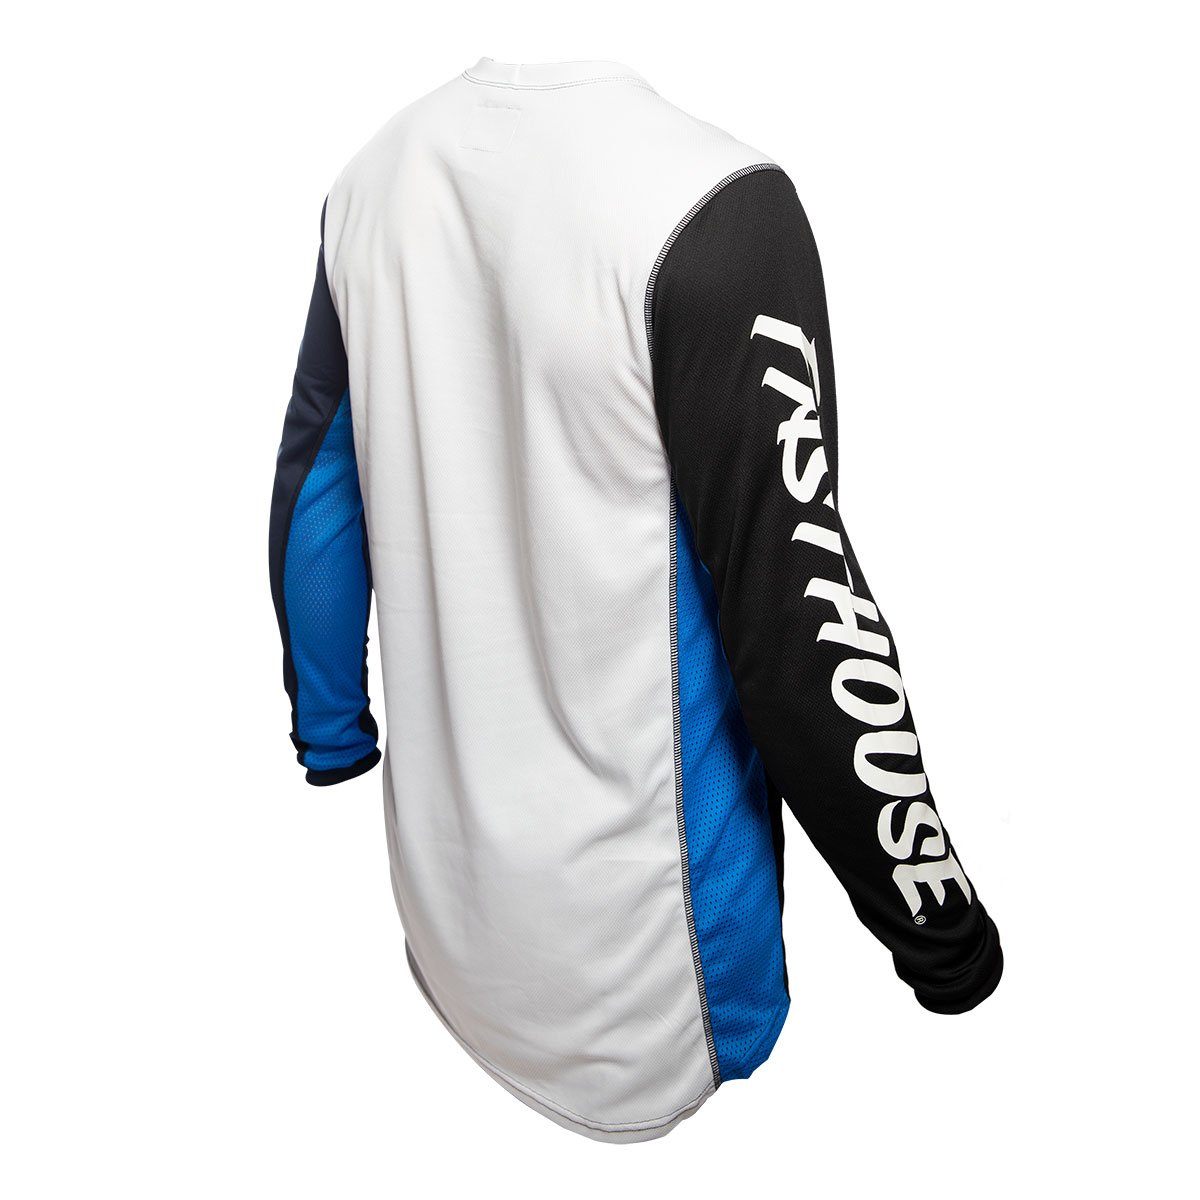 Rally Jersey - Black/Blue